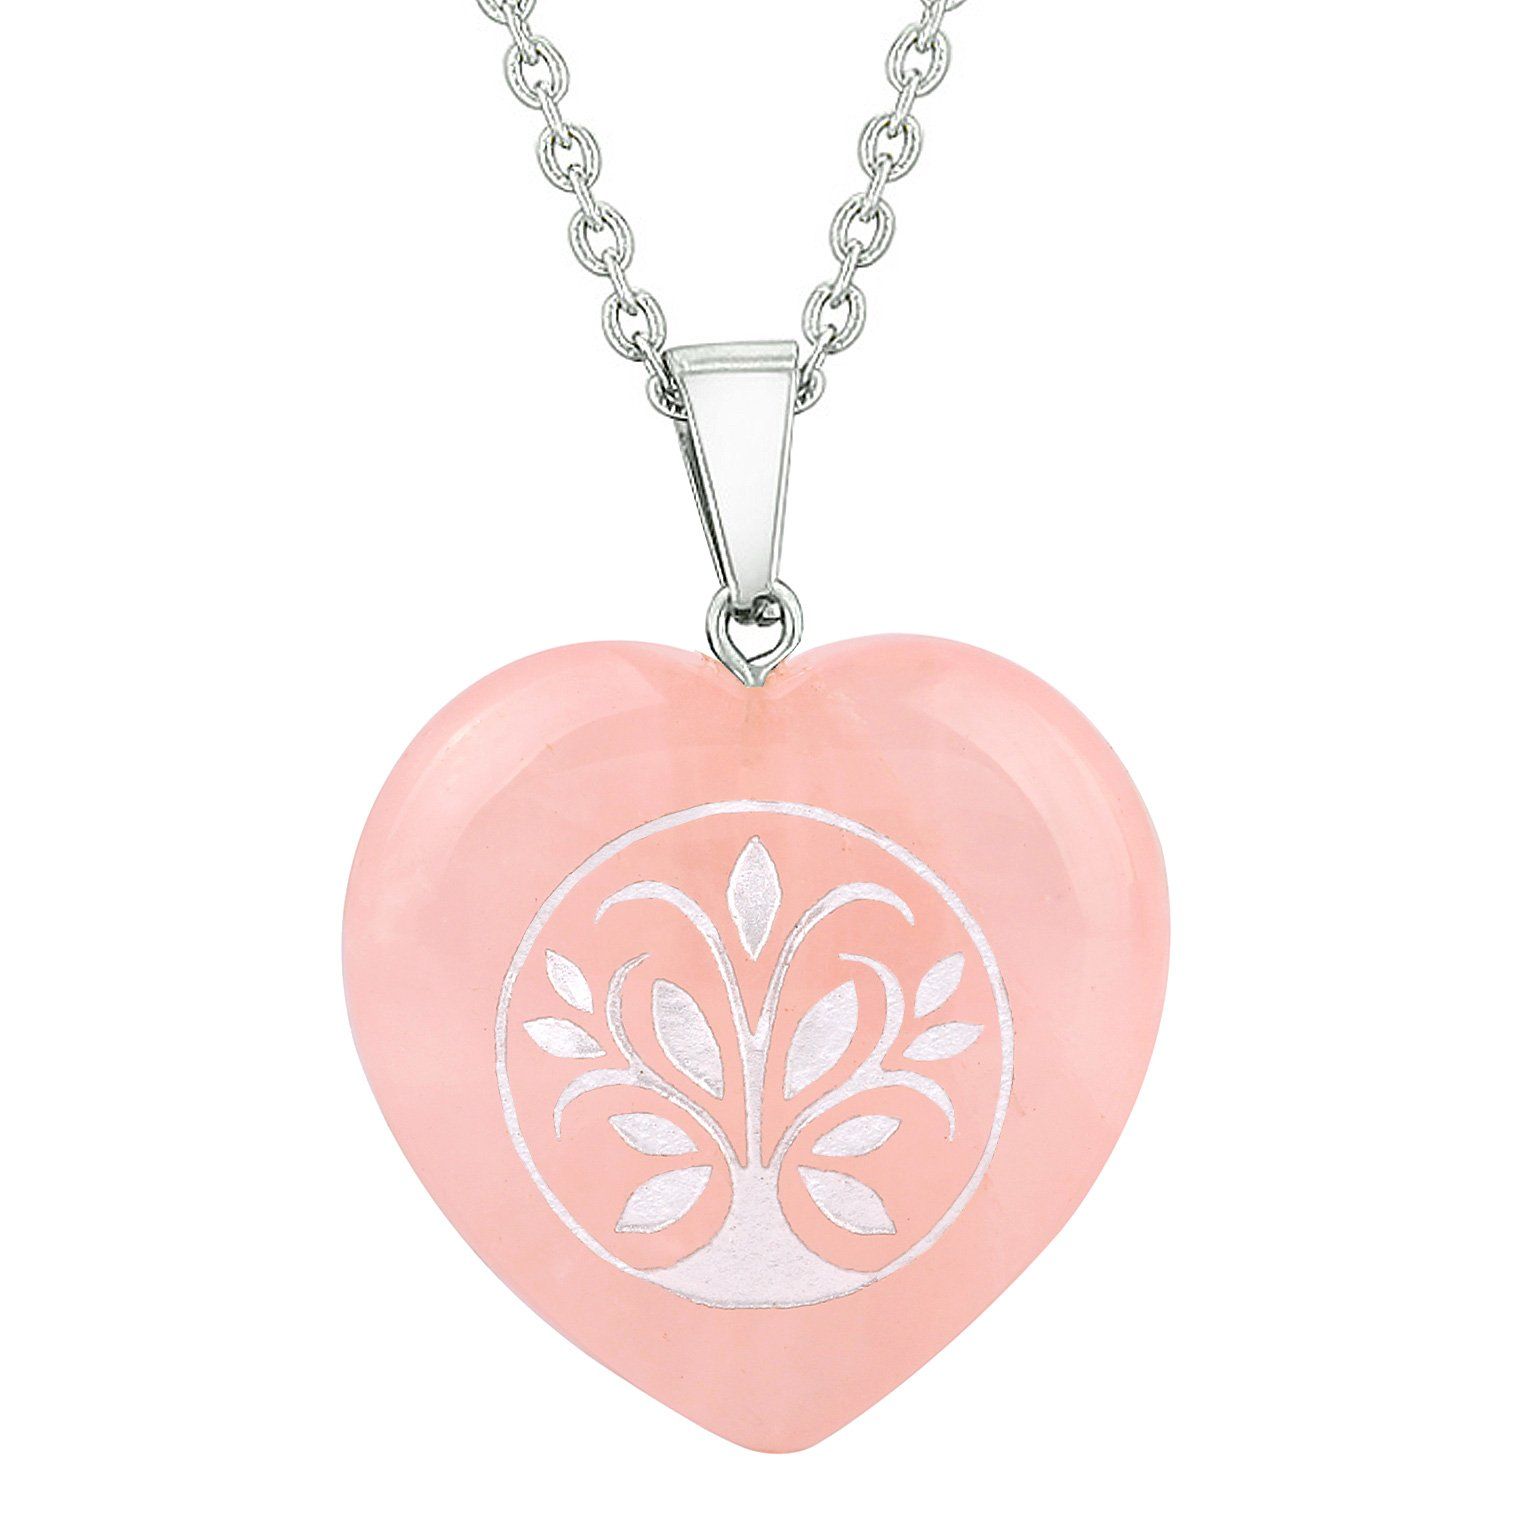 Amulet Tree of Life Magical Powers Protection Energy Rose Quartz Puffy Heart Pendant Necklace